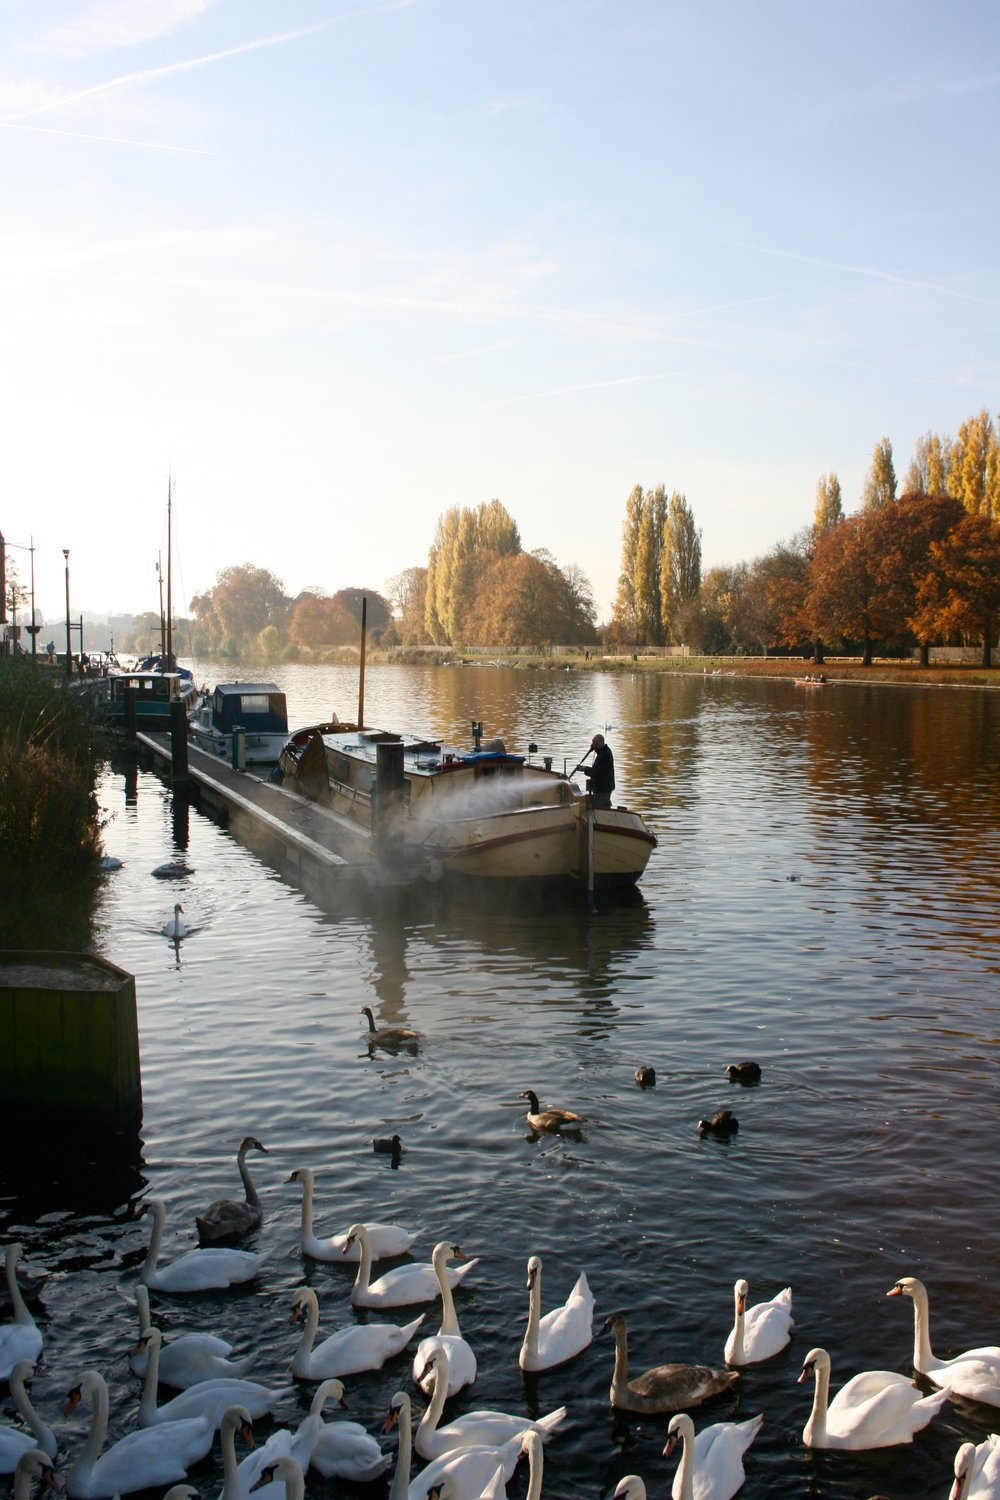 The shift of seasons, from Summer to Autumn in beautiful Kingston upon Thames